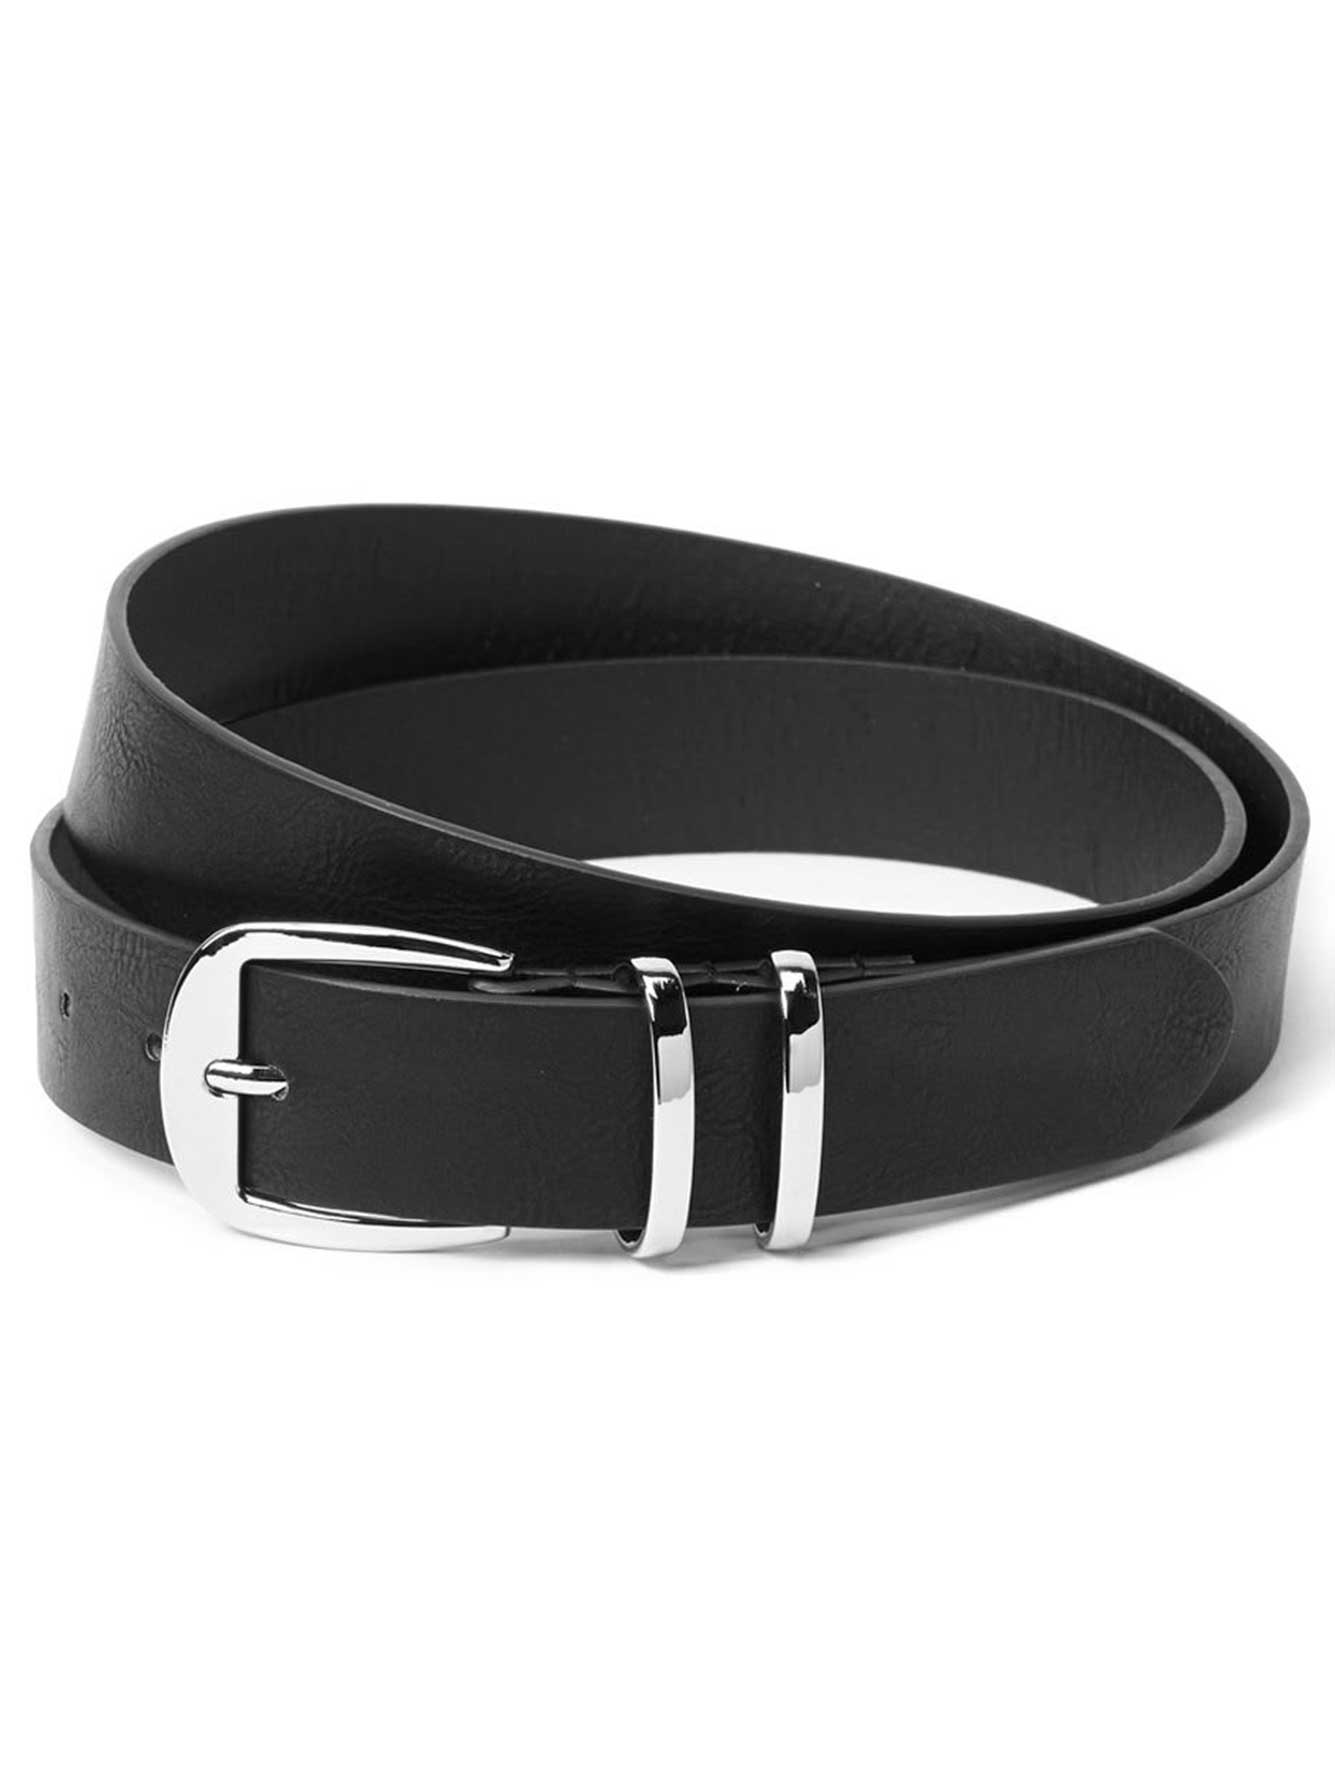 faux leather belt penningtons